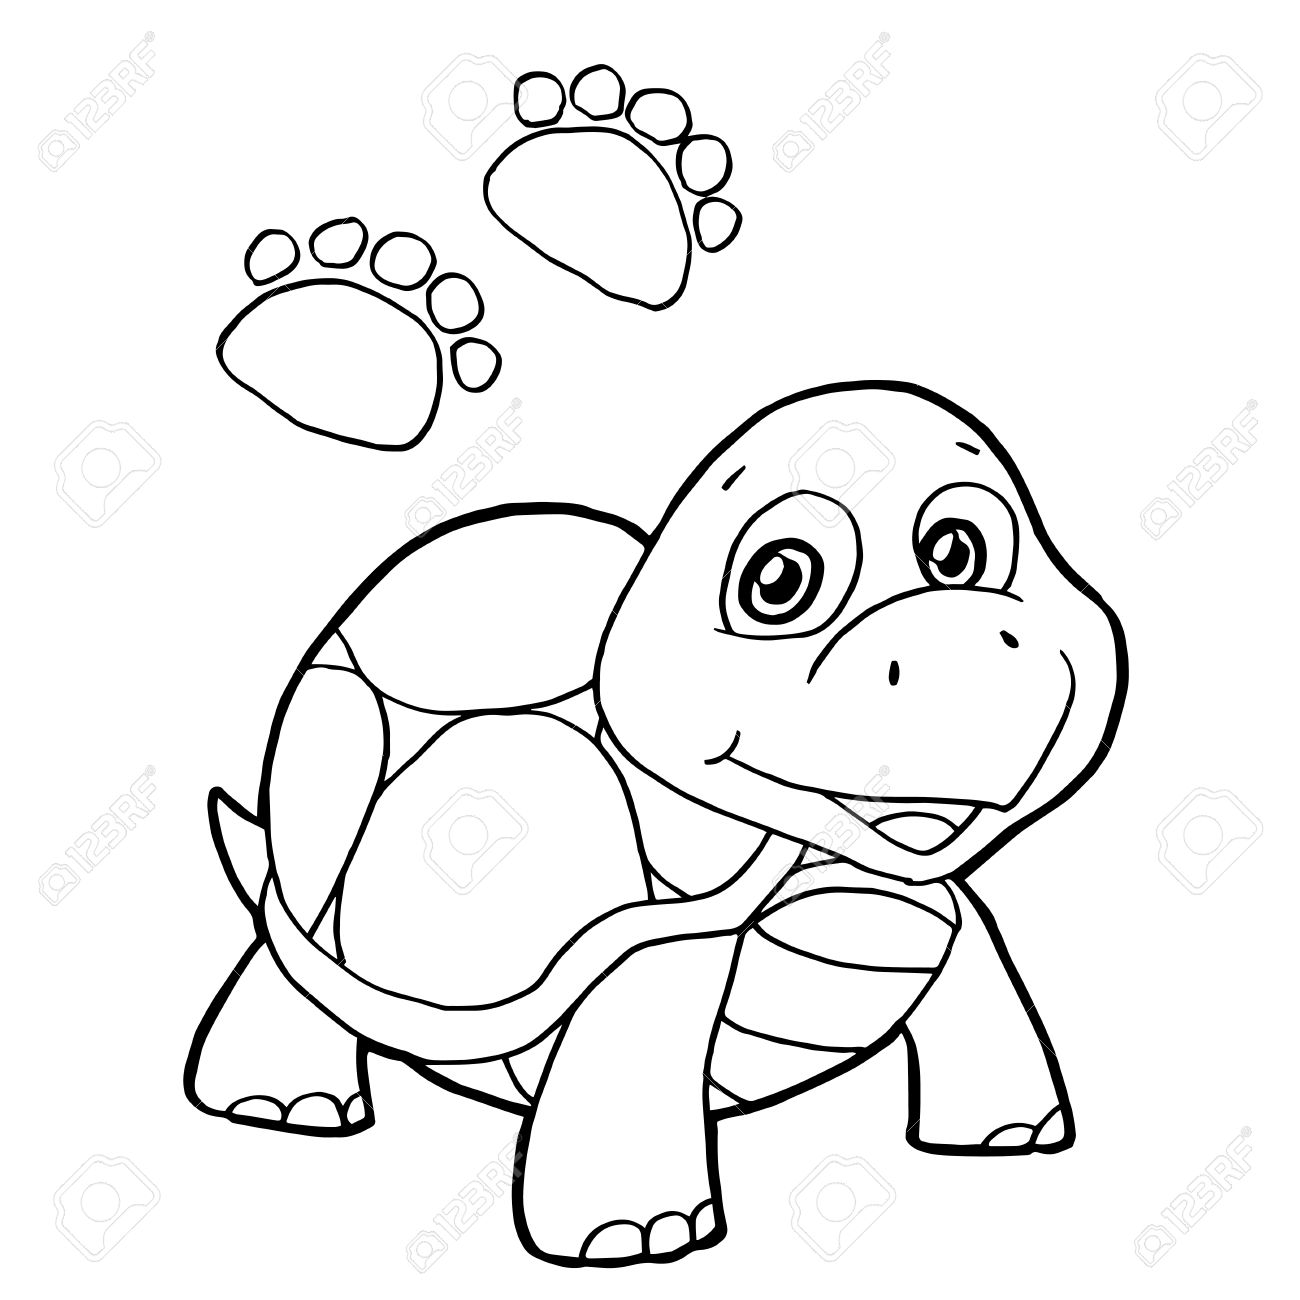 1300x1300 Paw Print With Turtle Coloring Pages Vector Royalty Free Cliparts